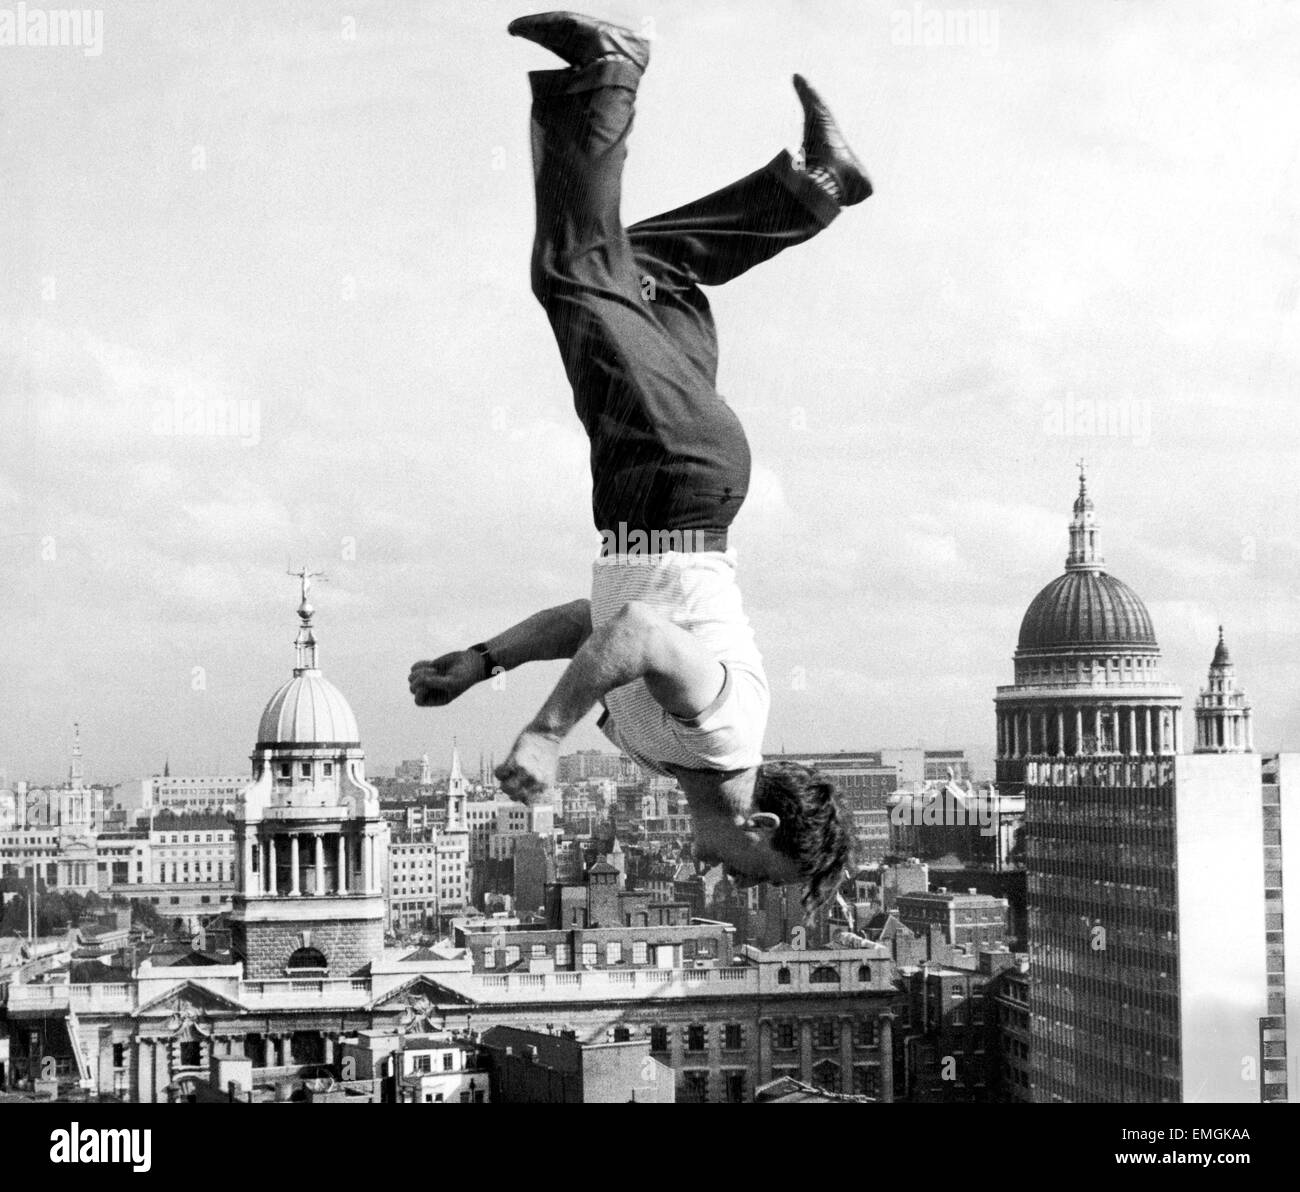 Acrobat Frank Paulo jumps upside down on a trampoline on the roof of the GPO building in London as he rehearses - Stock Image